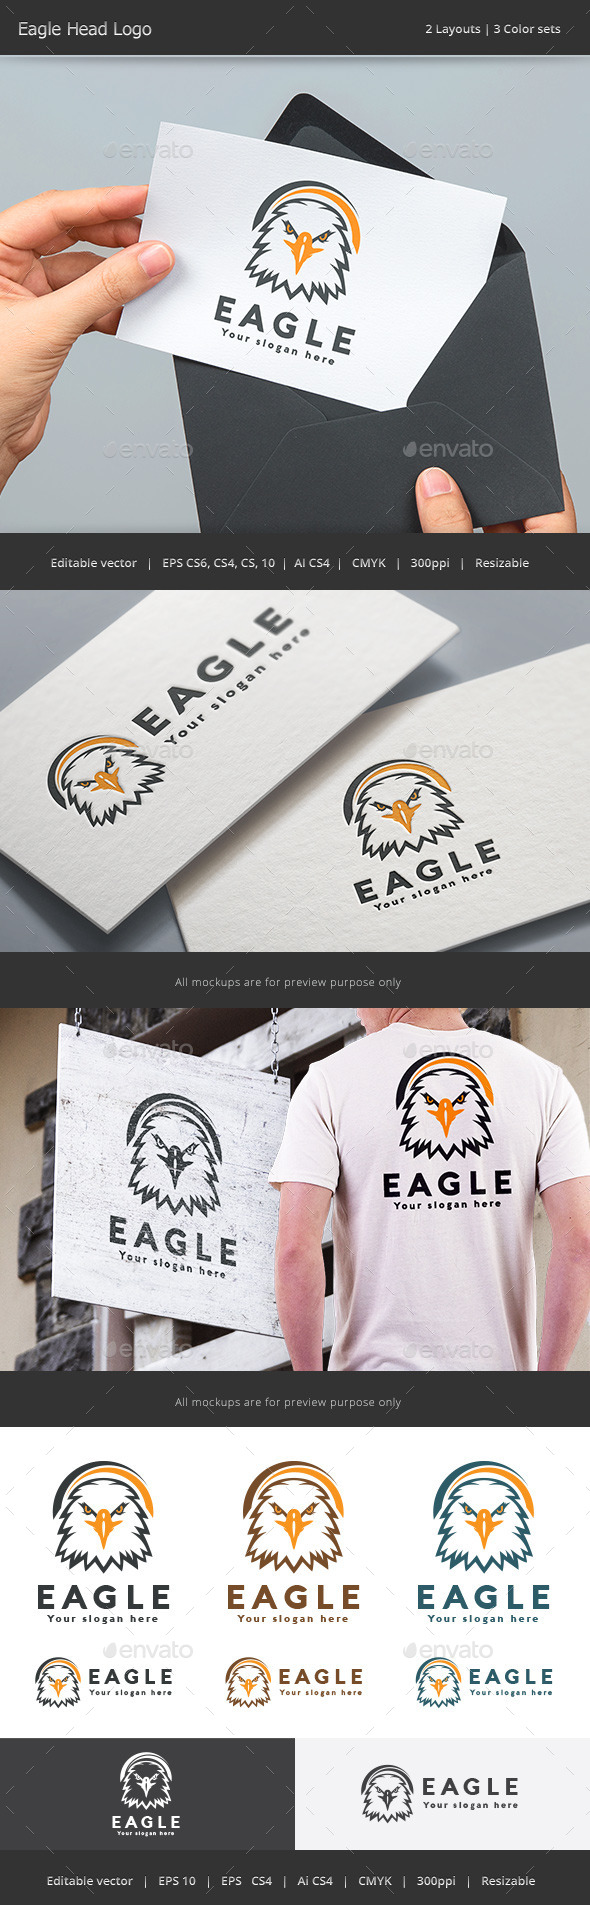 Eagle Head Logo - Animals Logo Templates